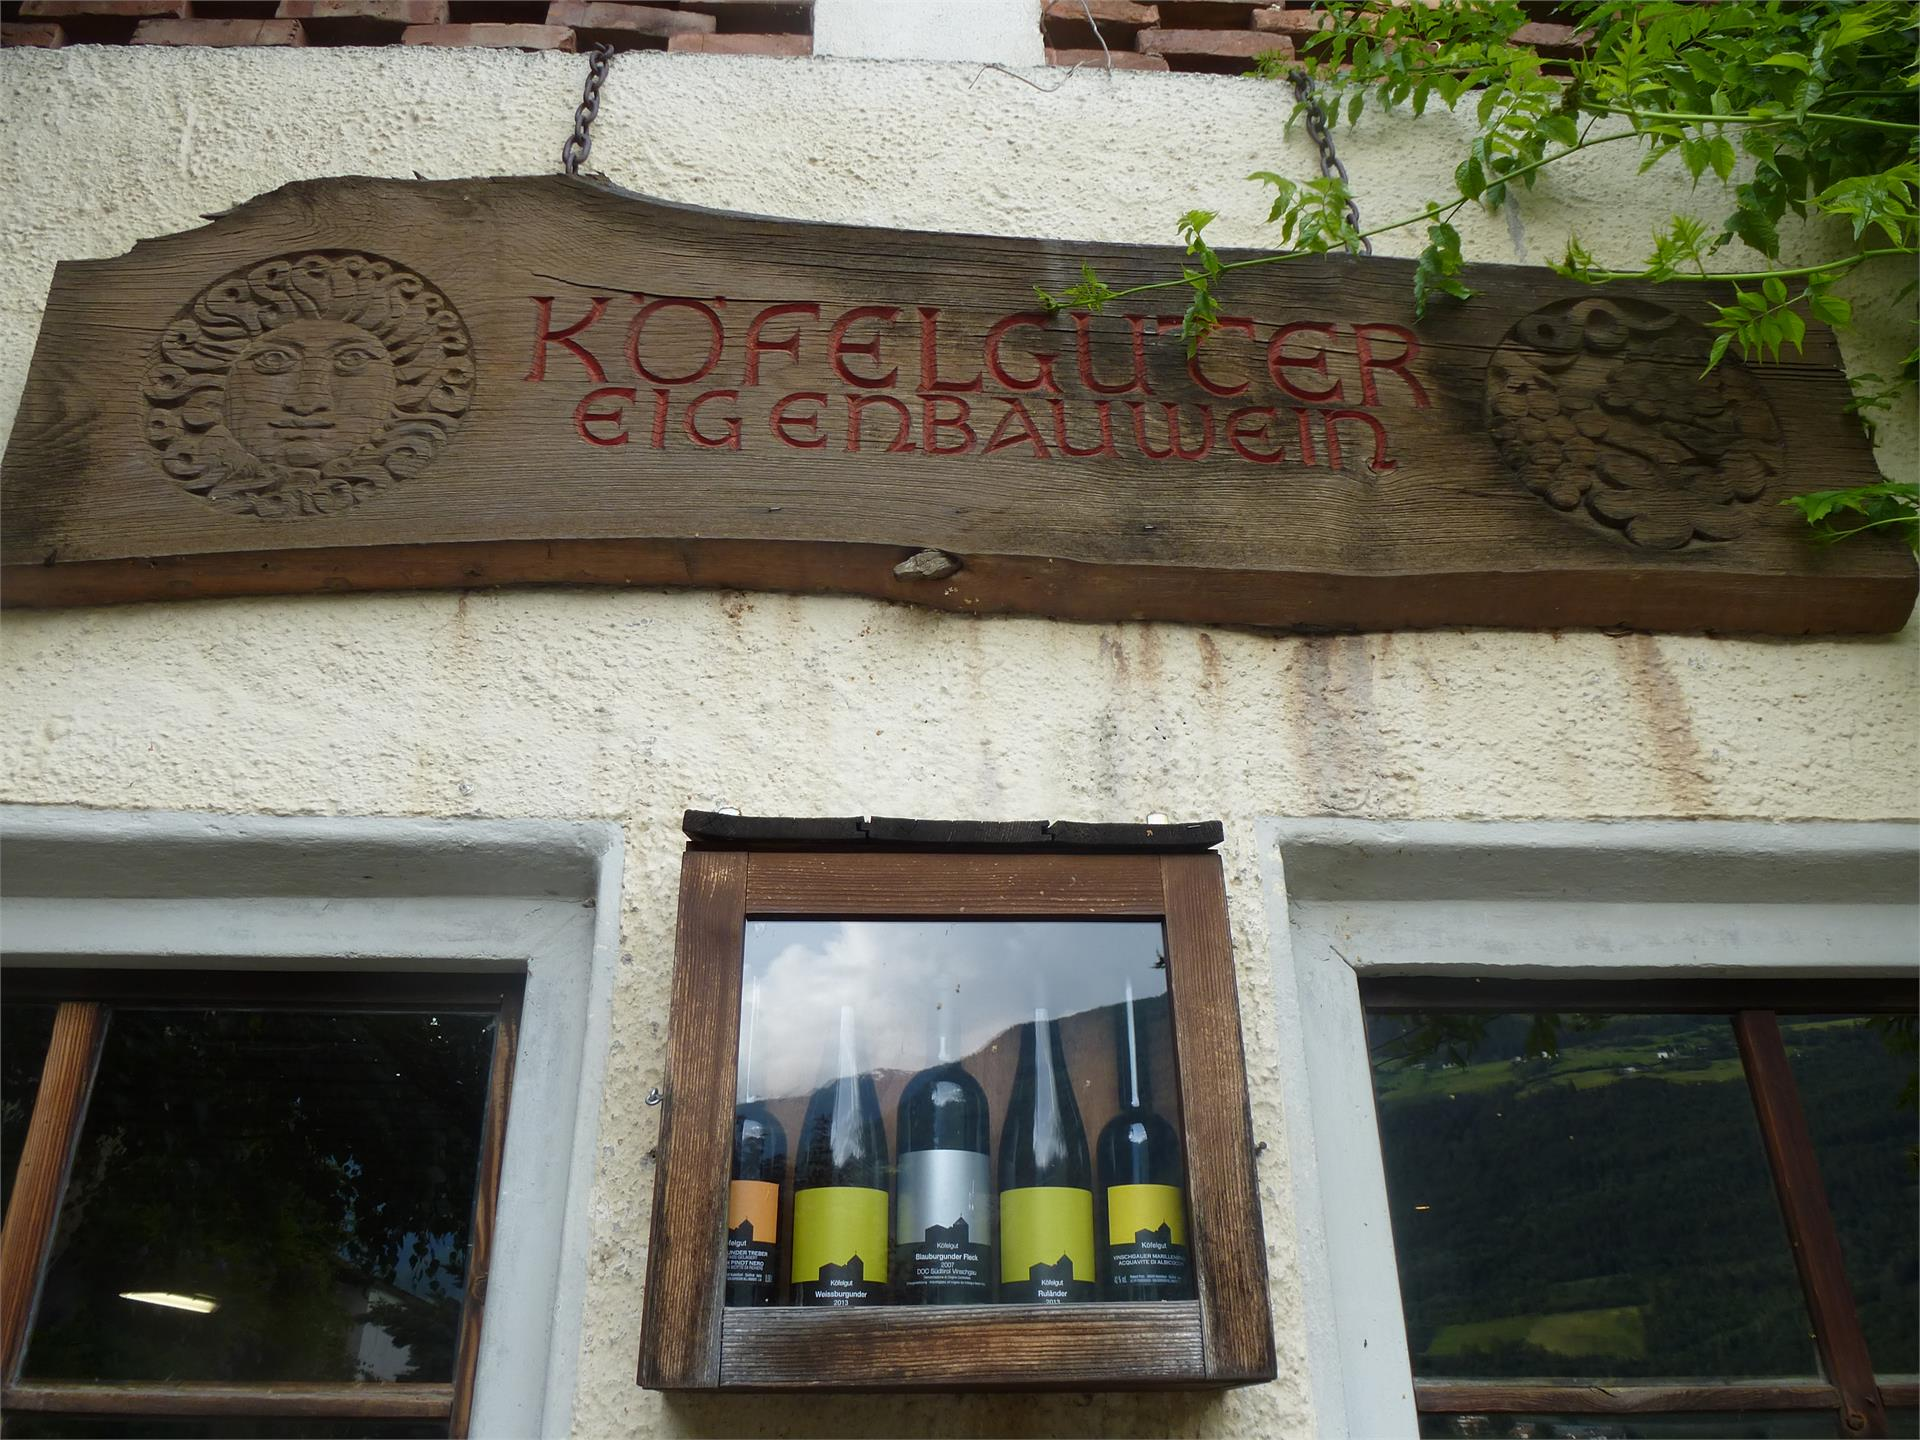 Winery Köfelgut